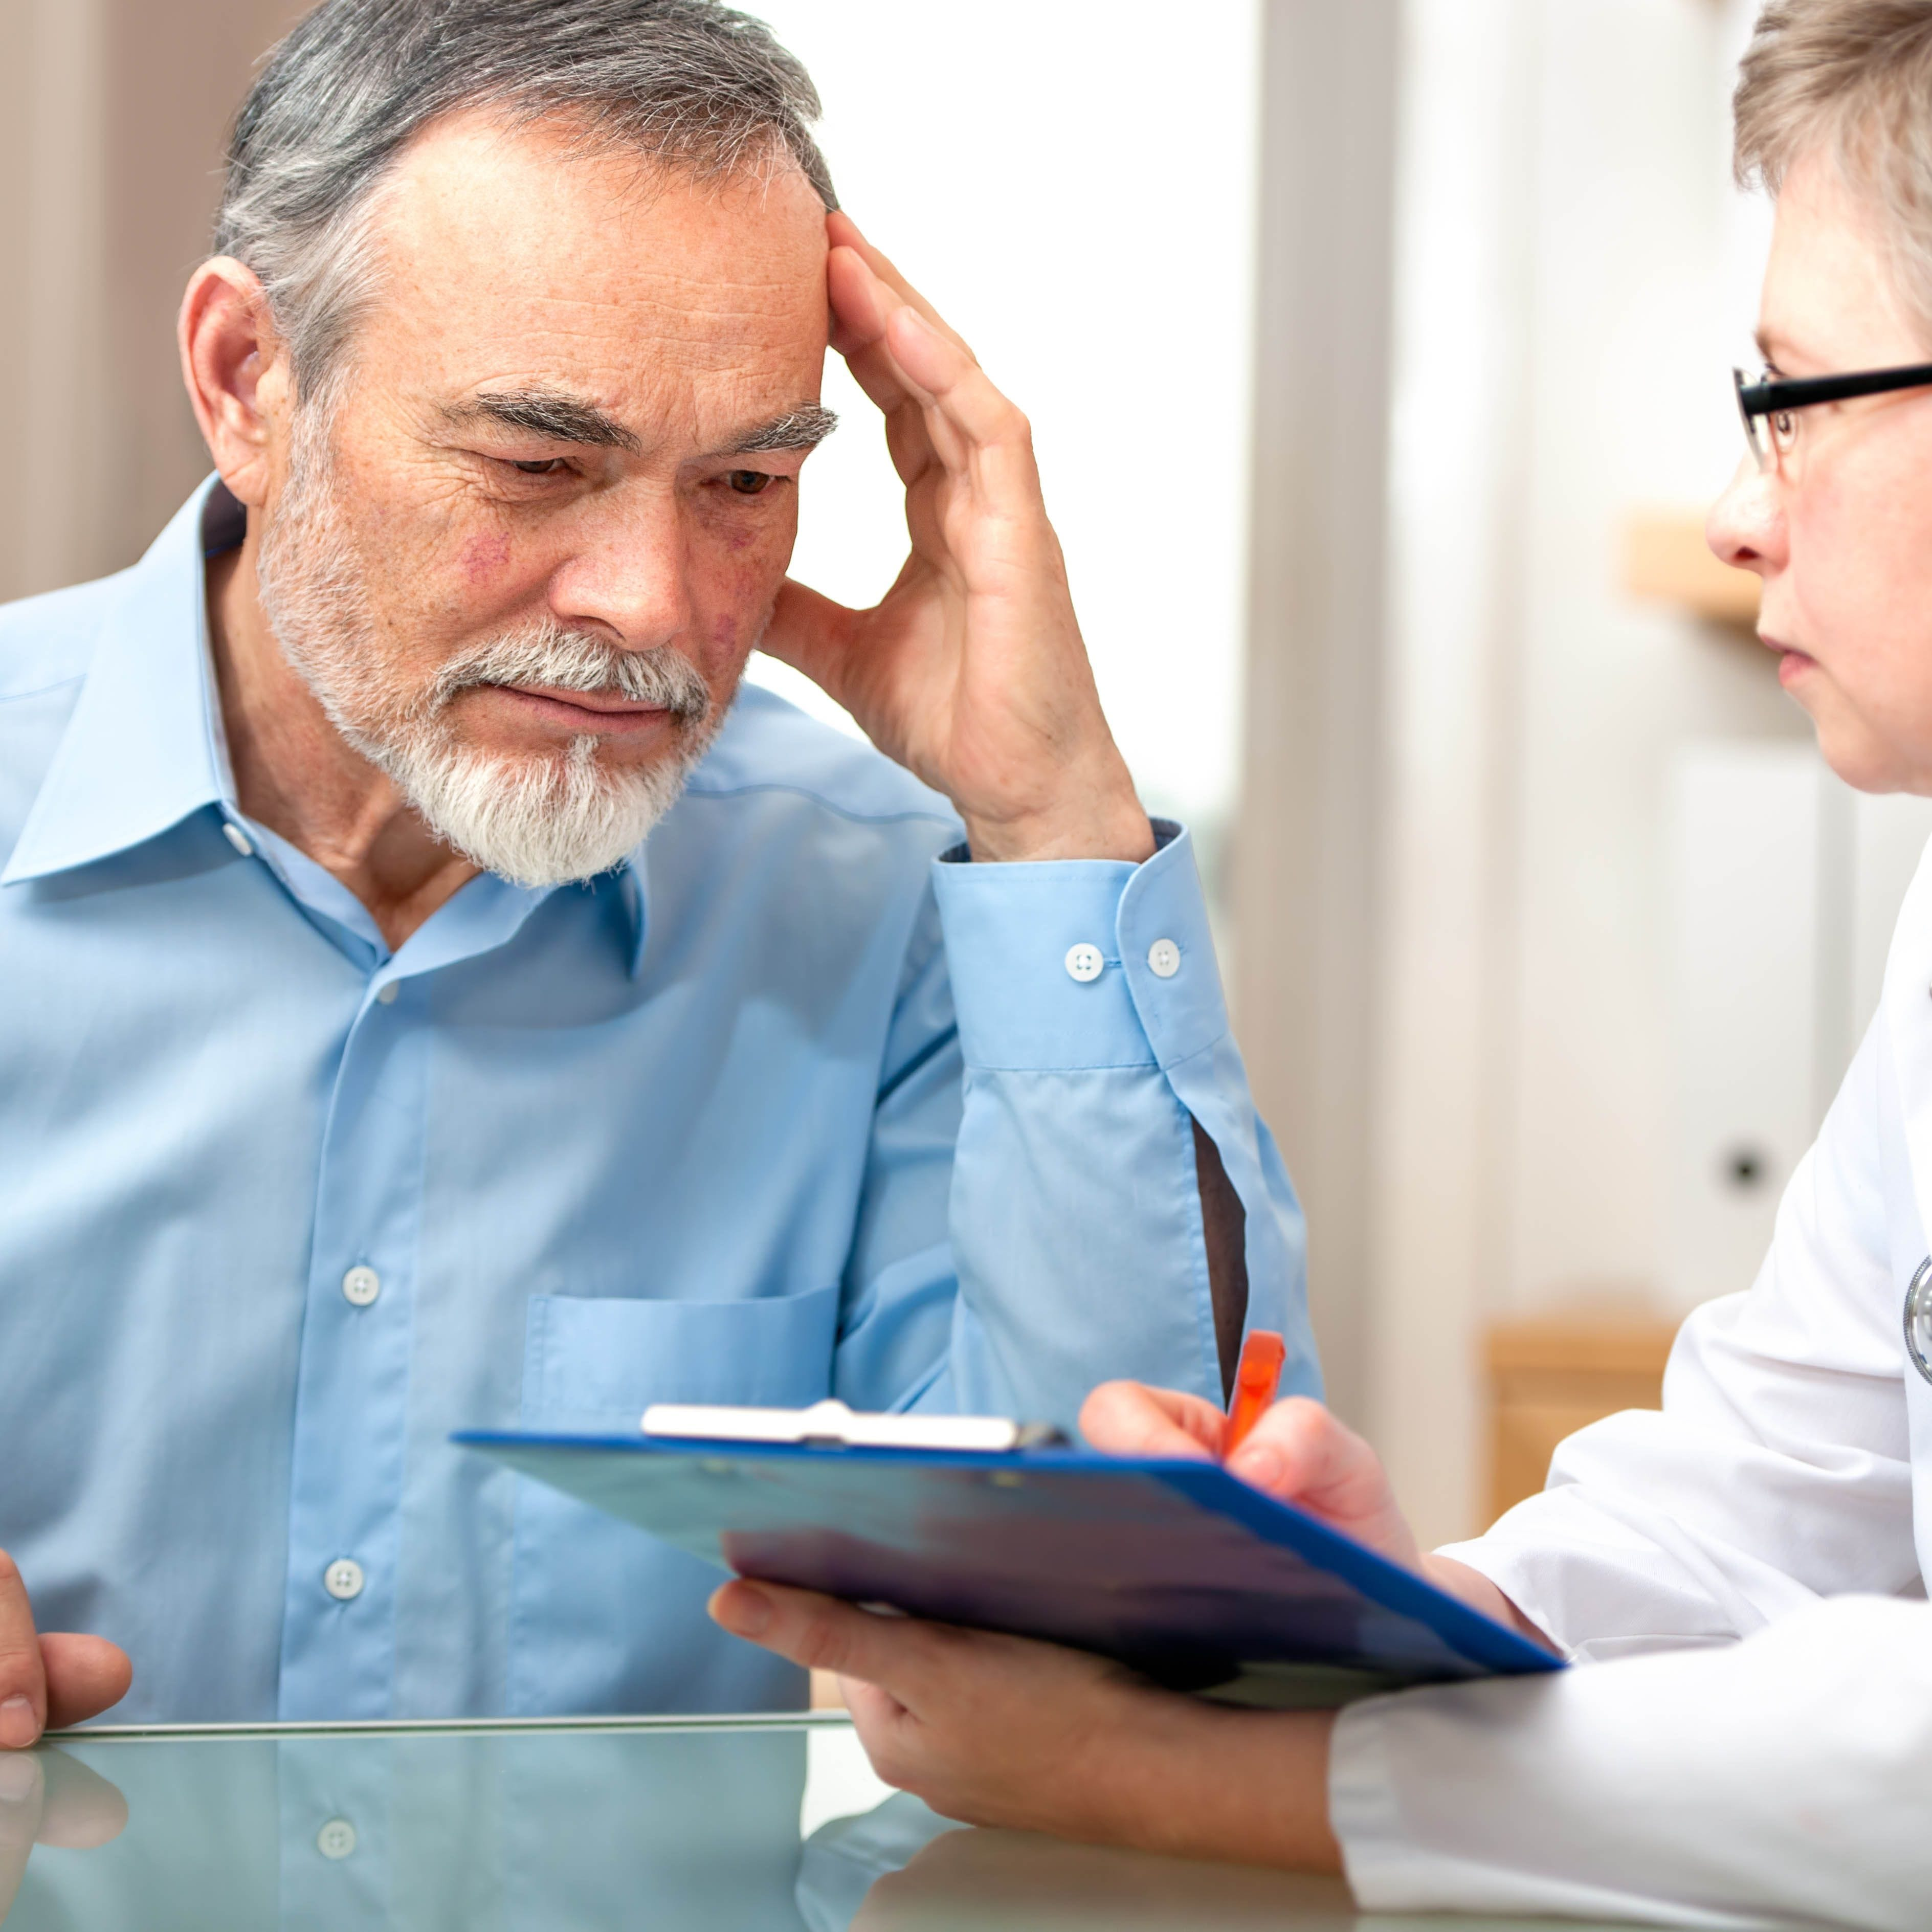 UCSF & KPMG Joint Research Study Reveals New Factors Of Dementia